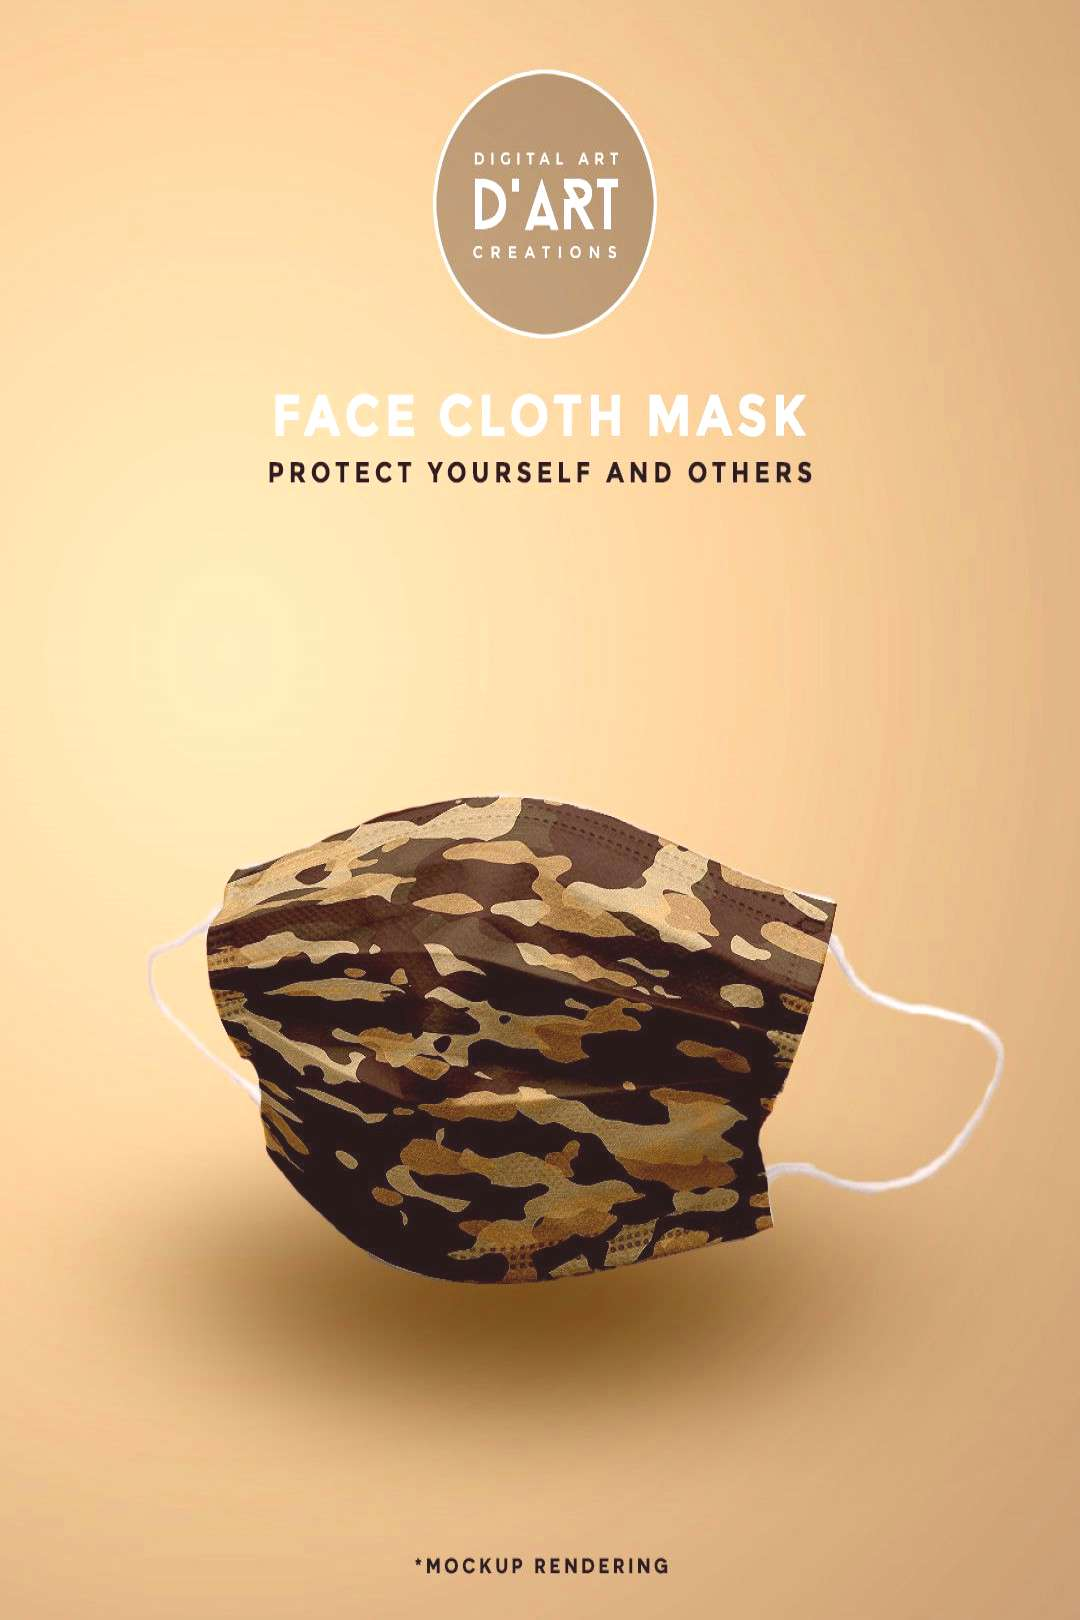 Desert Camouflage A cool and modern take on camouflage. Wear a mask, protect yourself and others...